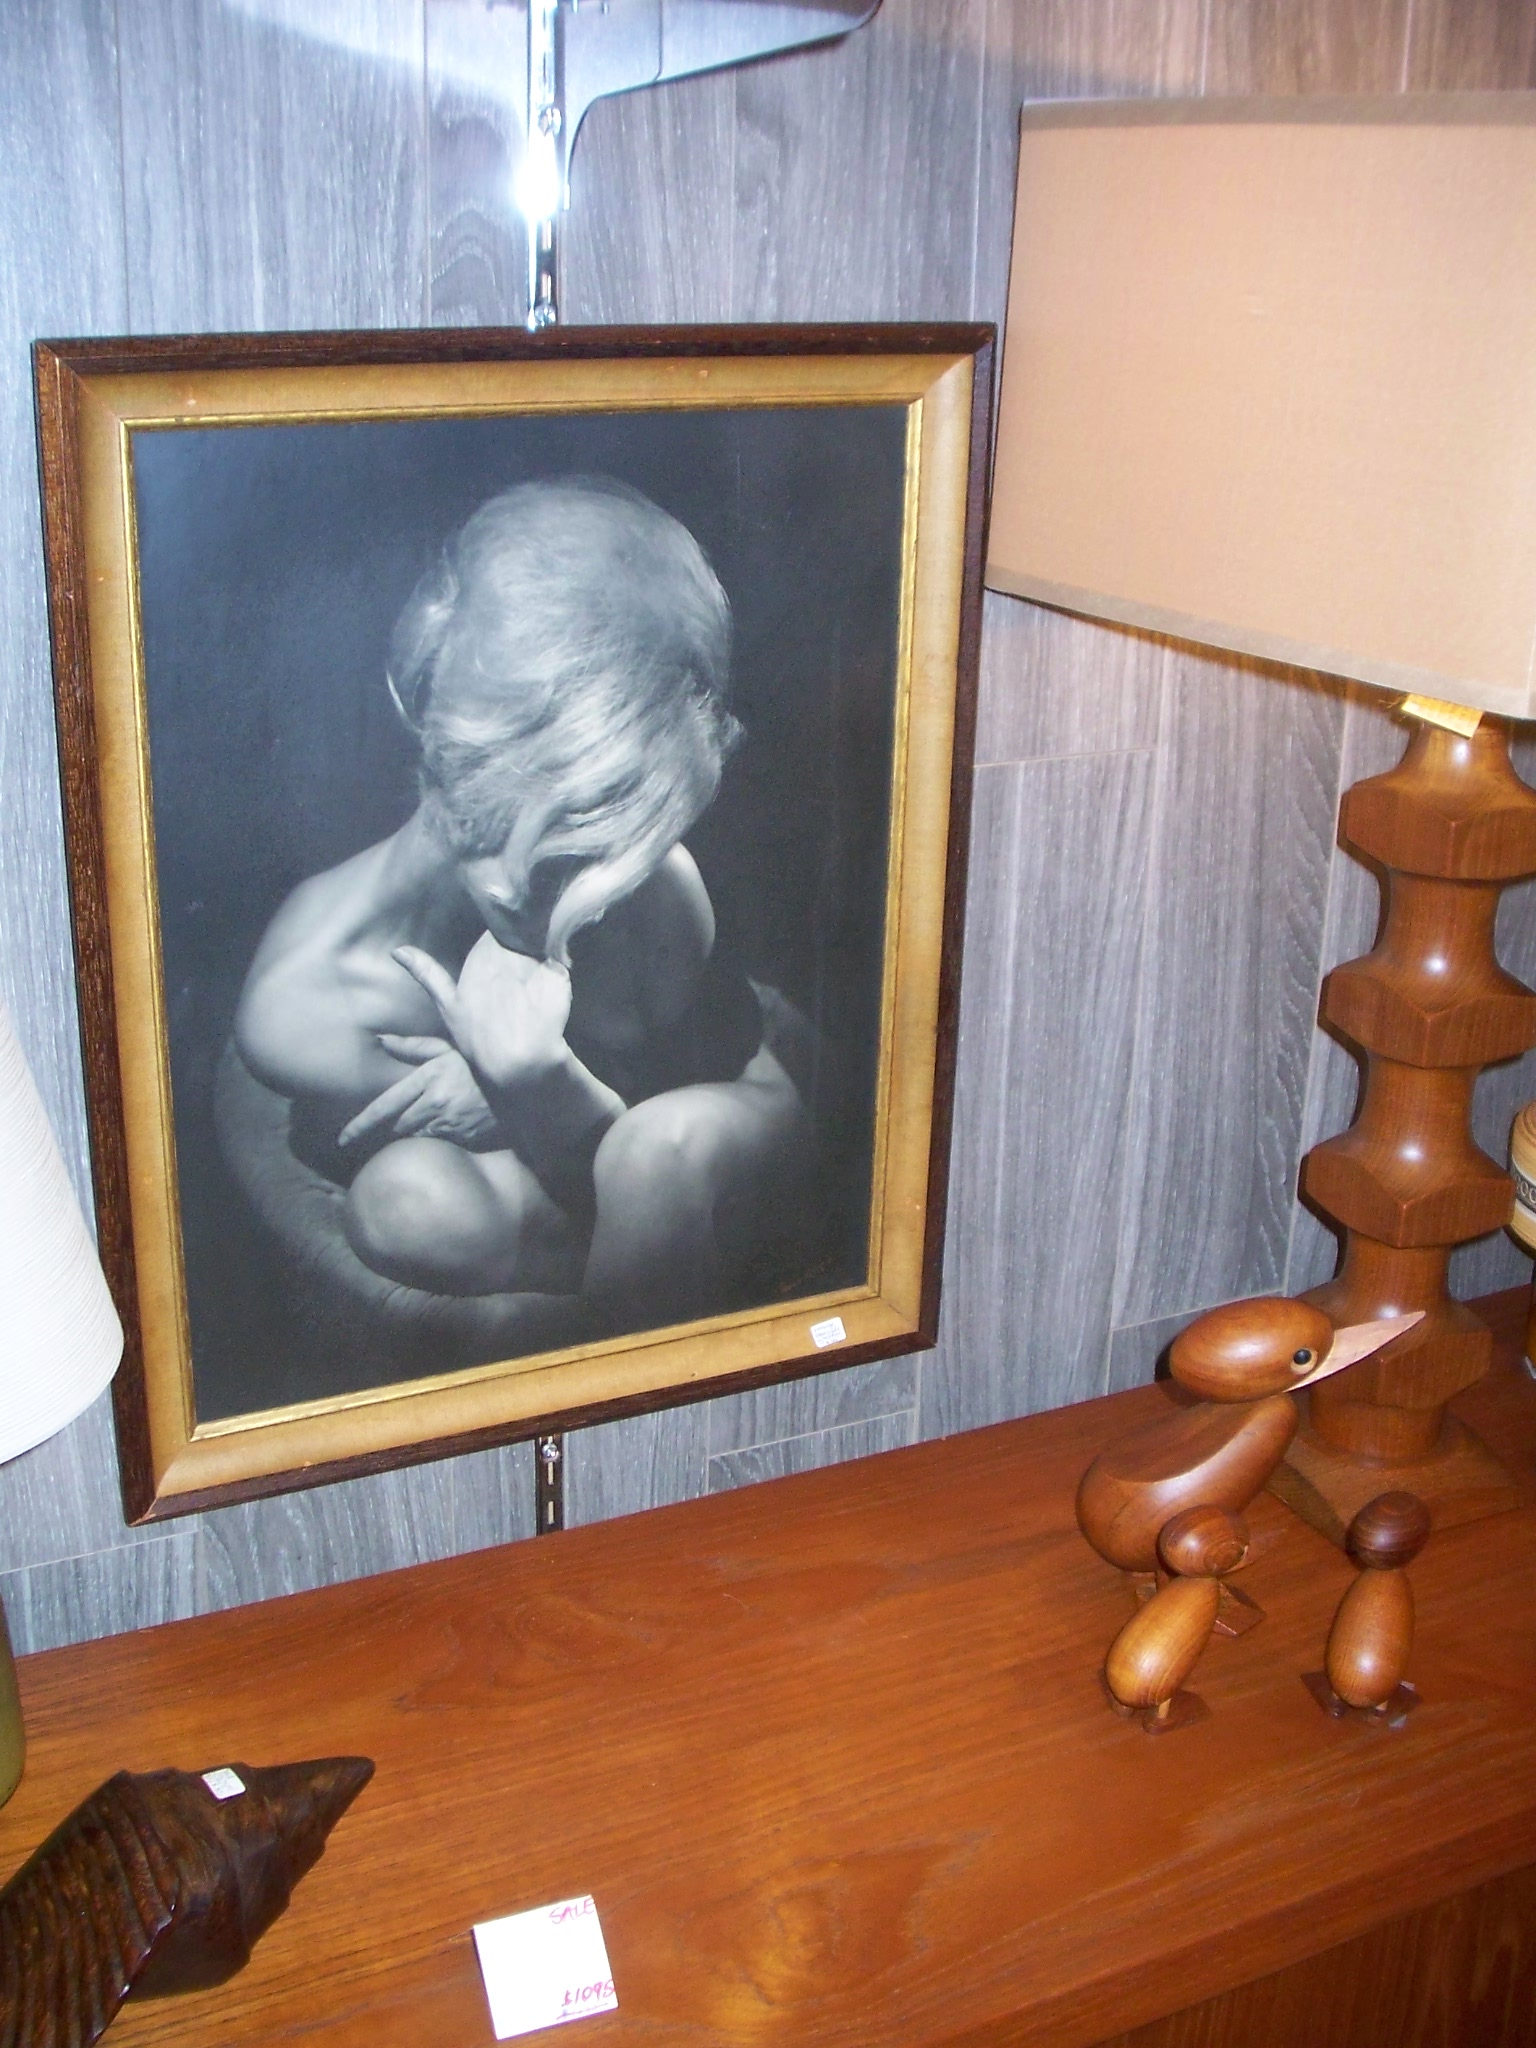 I love this photograph but my husband thought it was a bit risque for the living room.